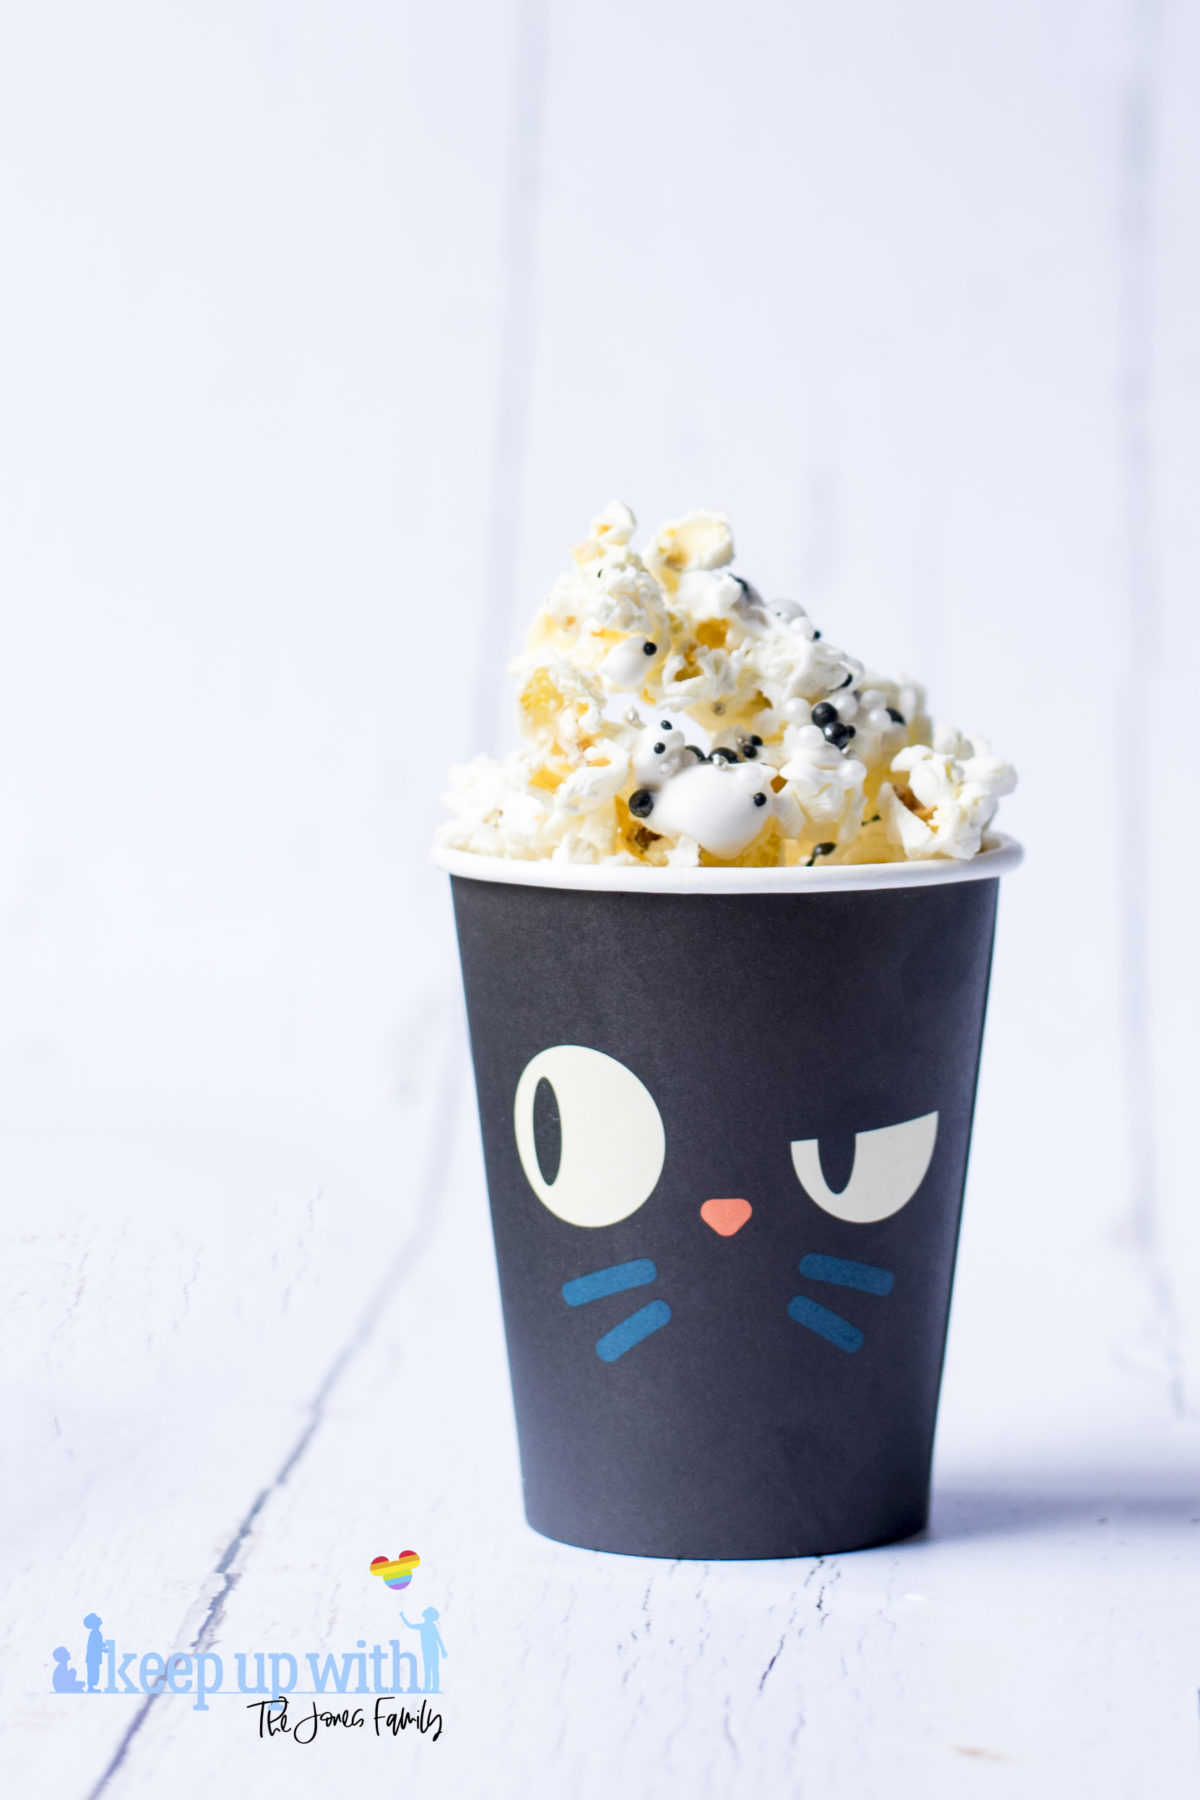 Image shows a black paper cup featuring yellow cat eyes and blue whiskers on the front, filled with Hocus Pocus Popcorn. Image by Keep Up With The Jones Family.